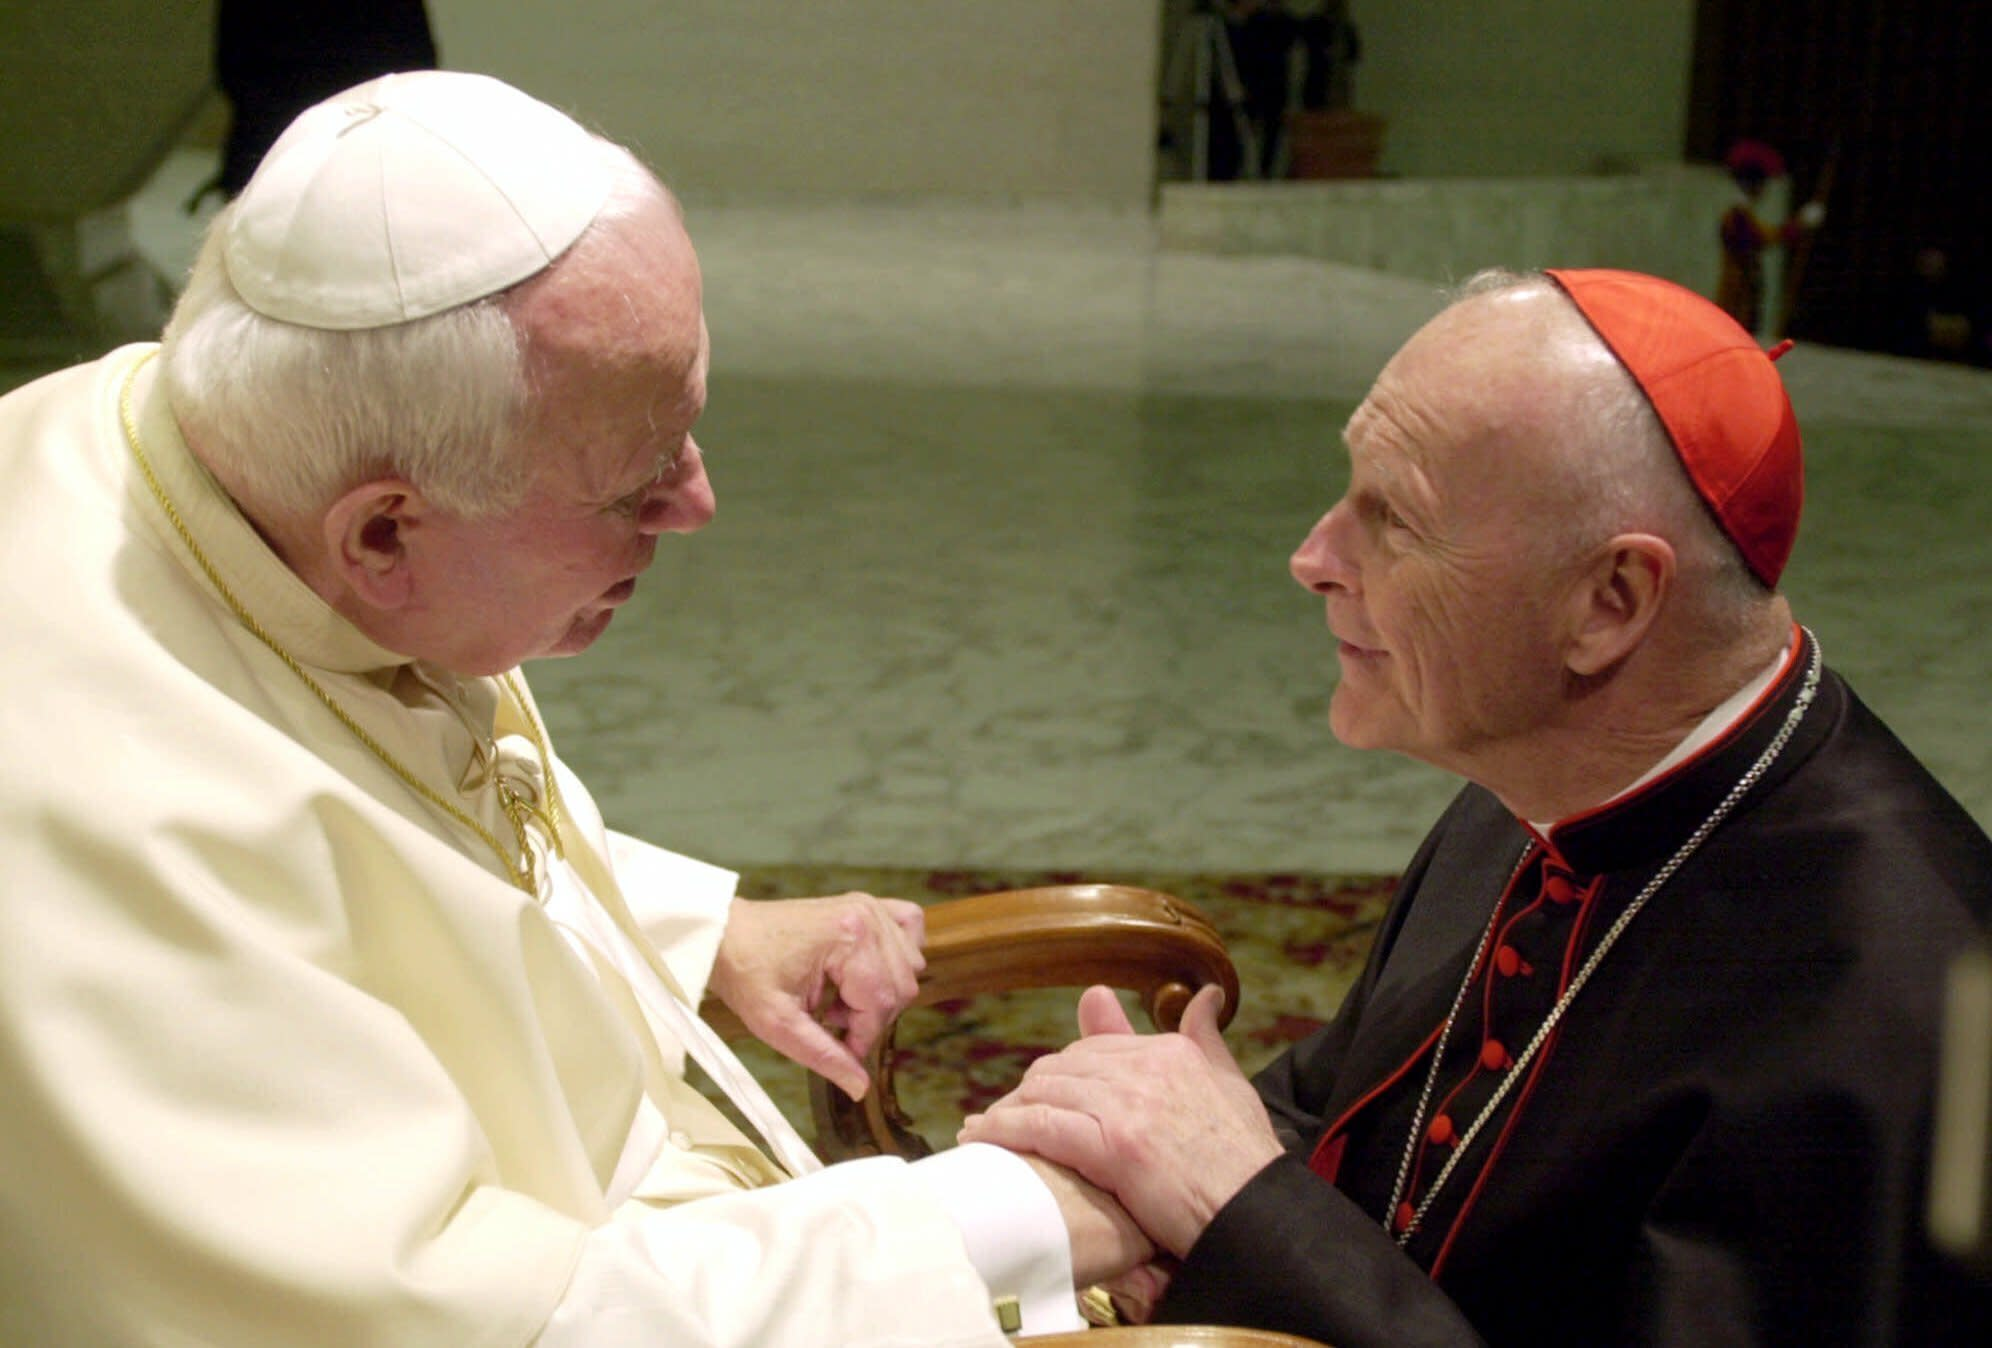 Vatican's McCarrick report forces debate on power and abuse